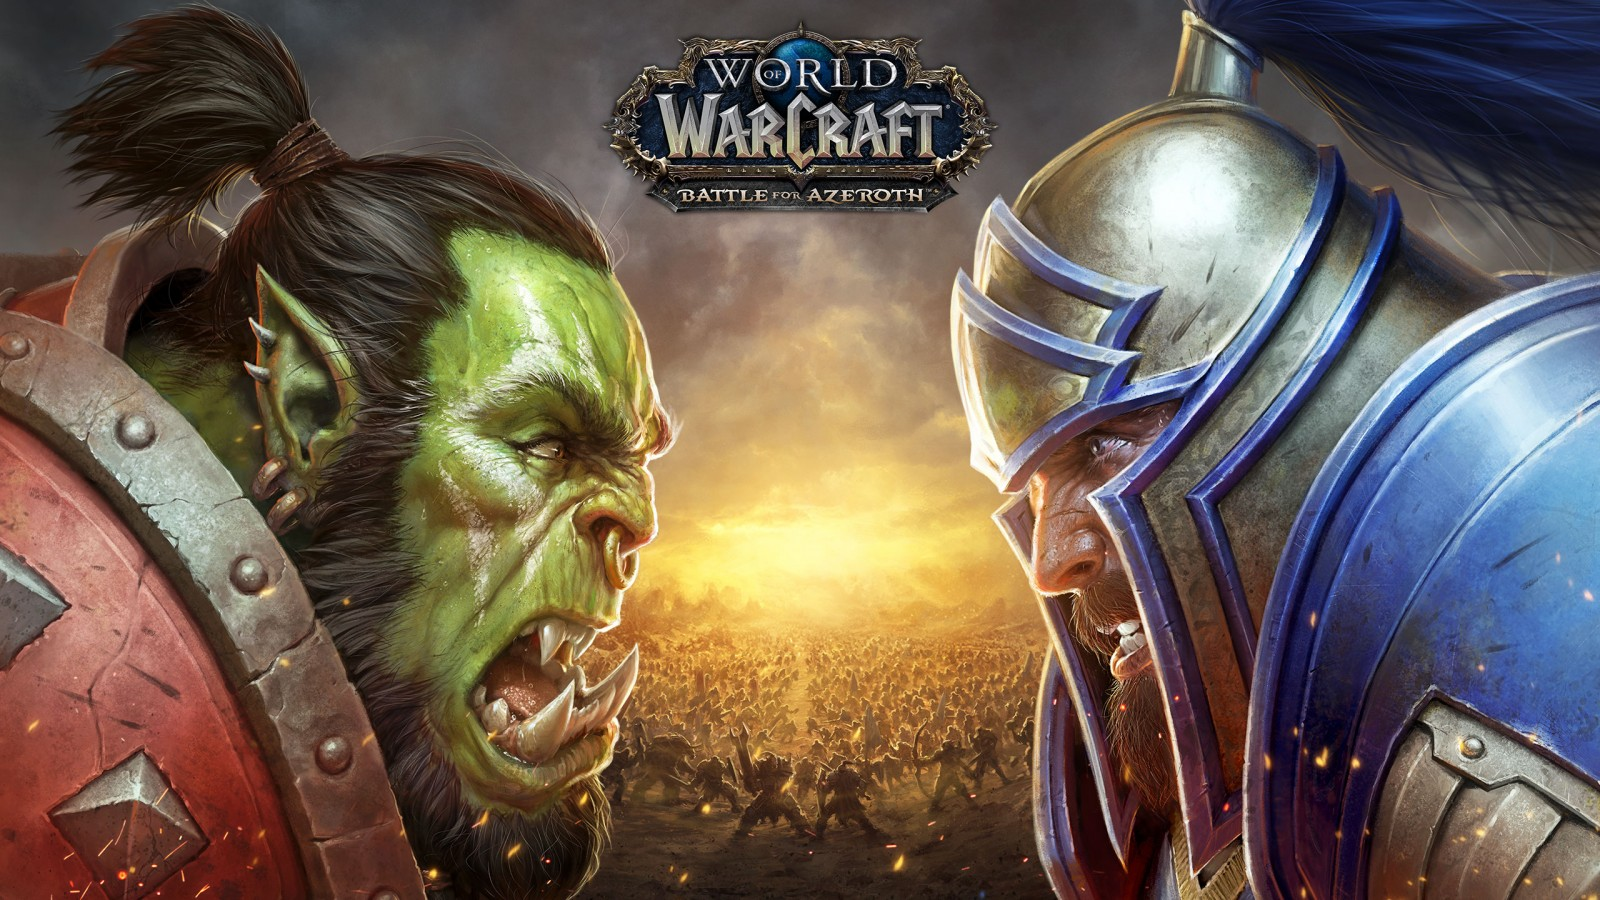 Ultra Hd 4k Wallpapers For Iphone World Of Warcraft Battle For Azeroth 2018 Wallpapers Hd